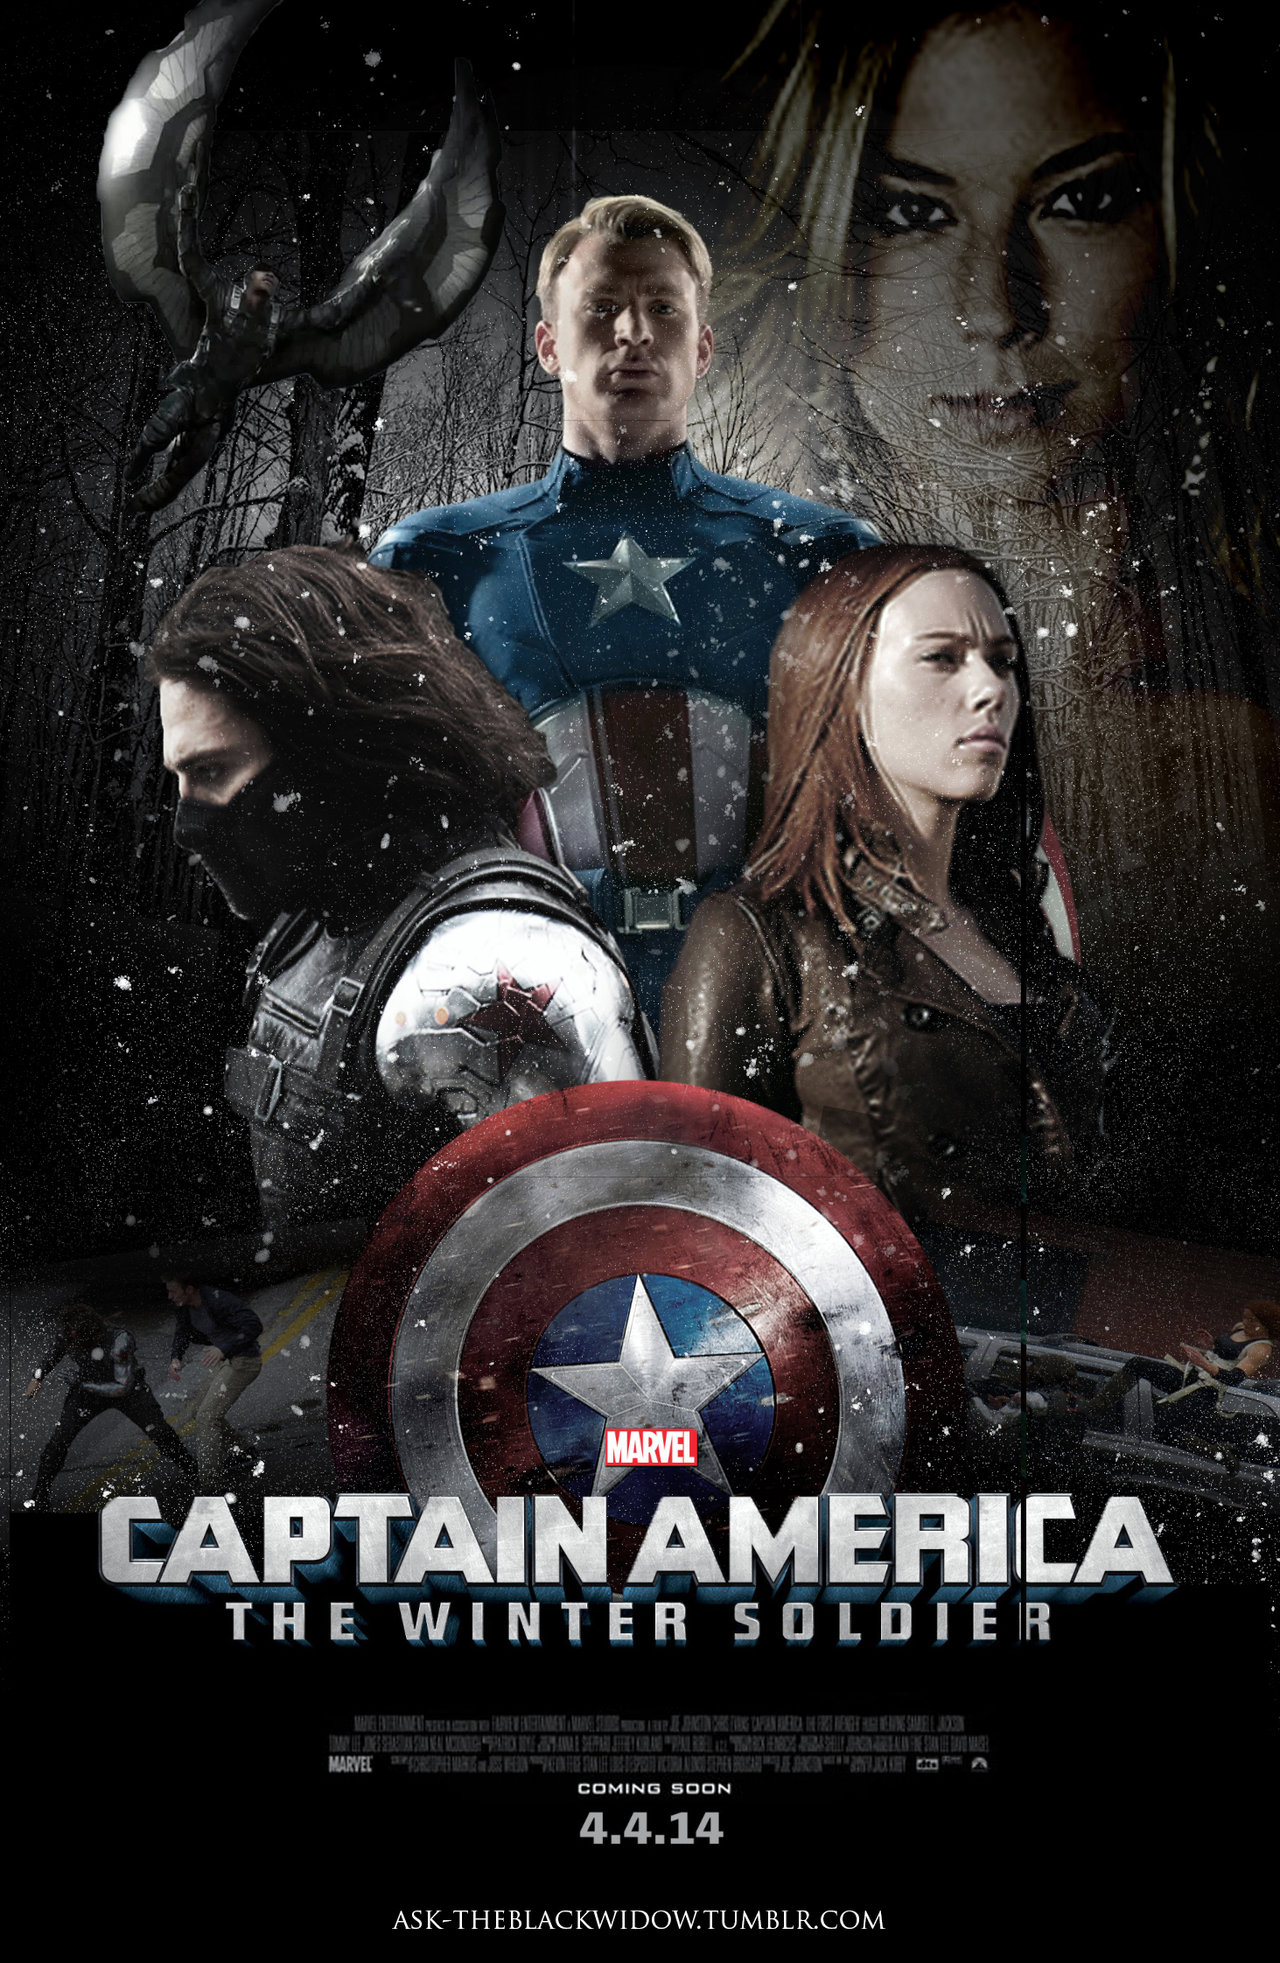 captain_america_2__the_winter_soldier_poster_by_littlemissromanoff-d6dgl3m.jpg